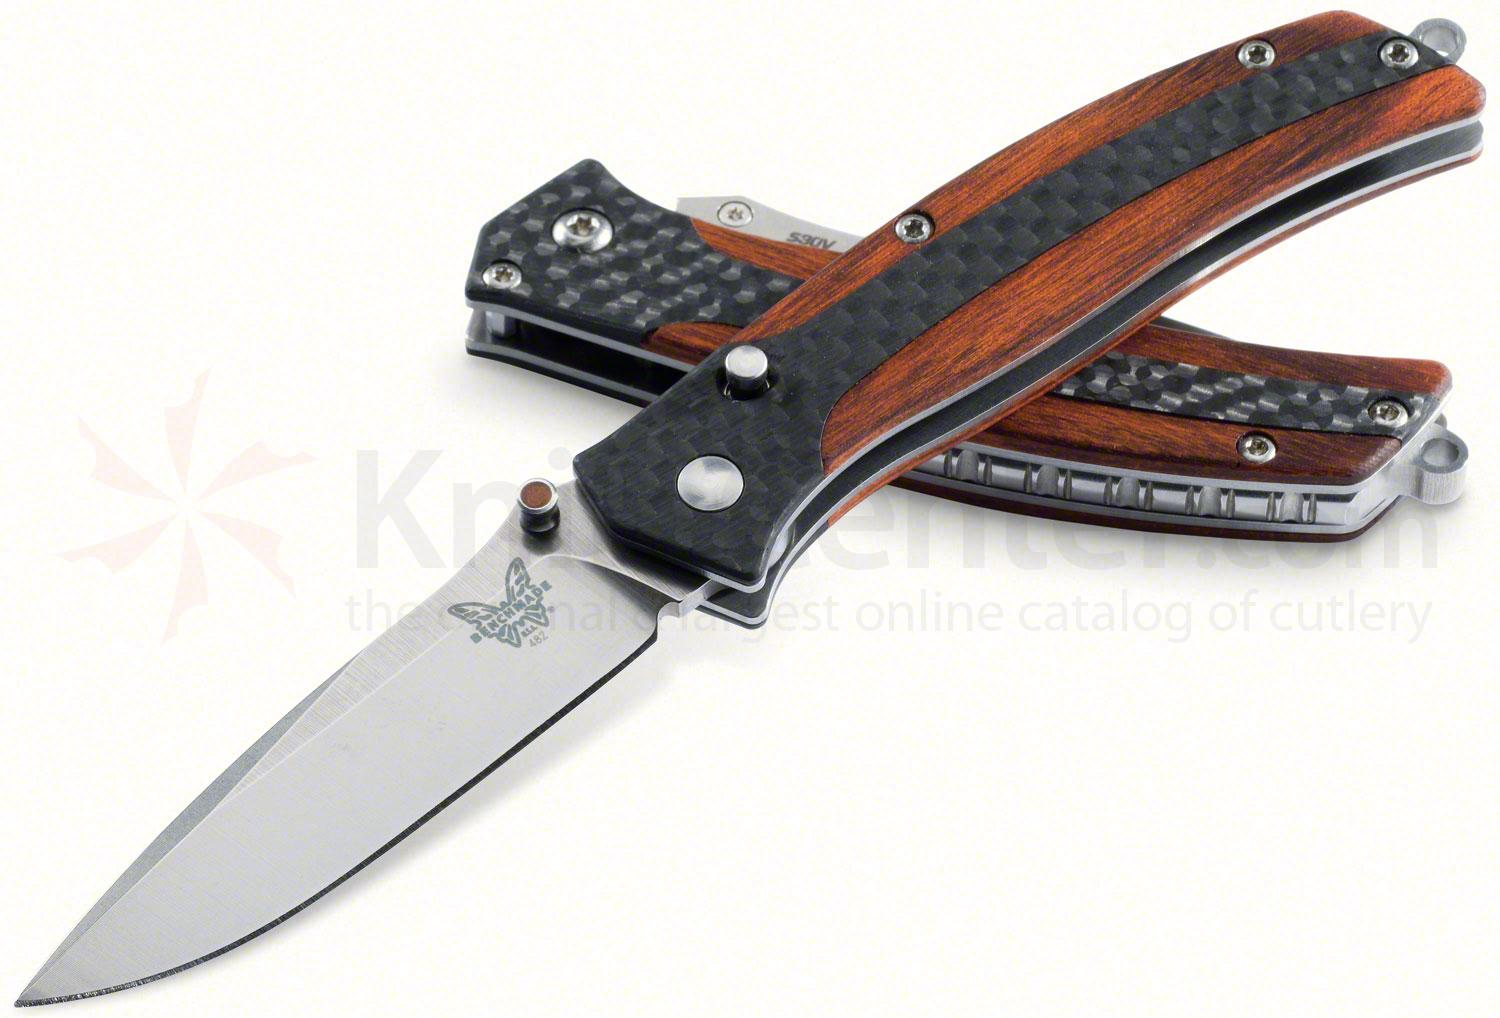 Benchmade 482 Megumi Gentlemans Folding Knife 2.48 inch S30V Plain Blade, Cocobolo and Carbon Fiber Handles